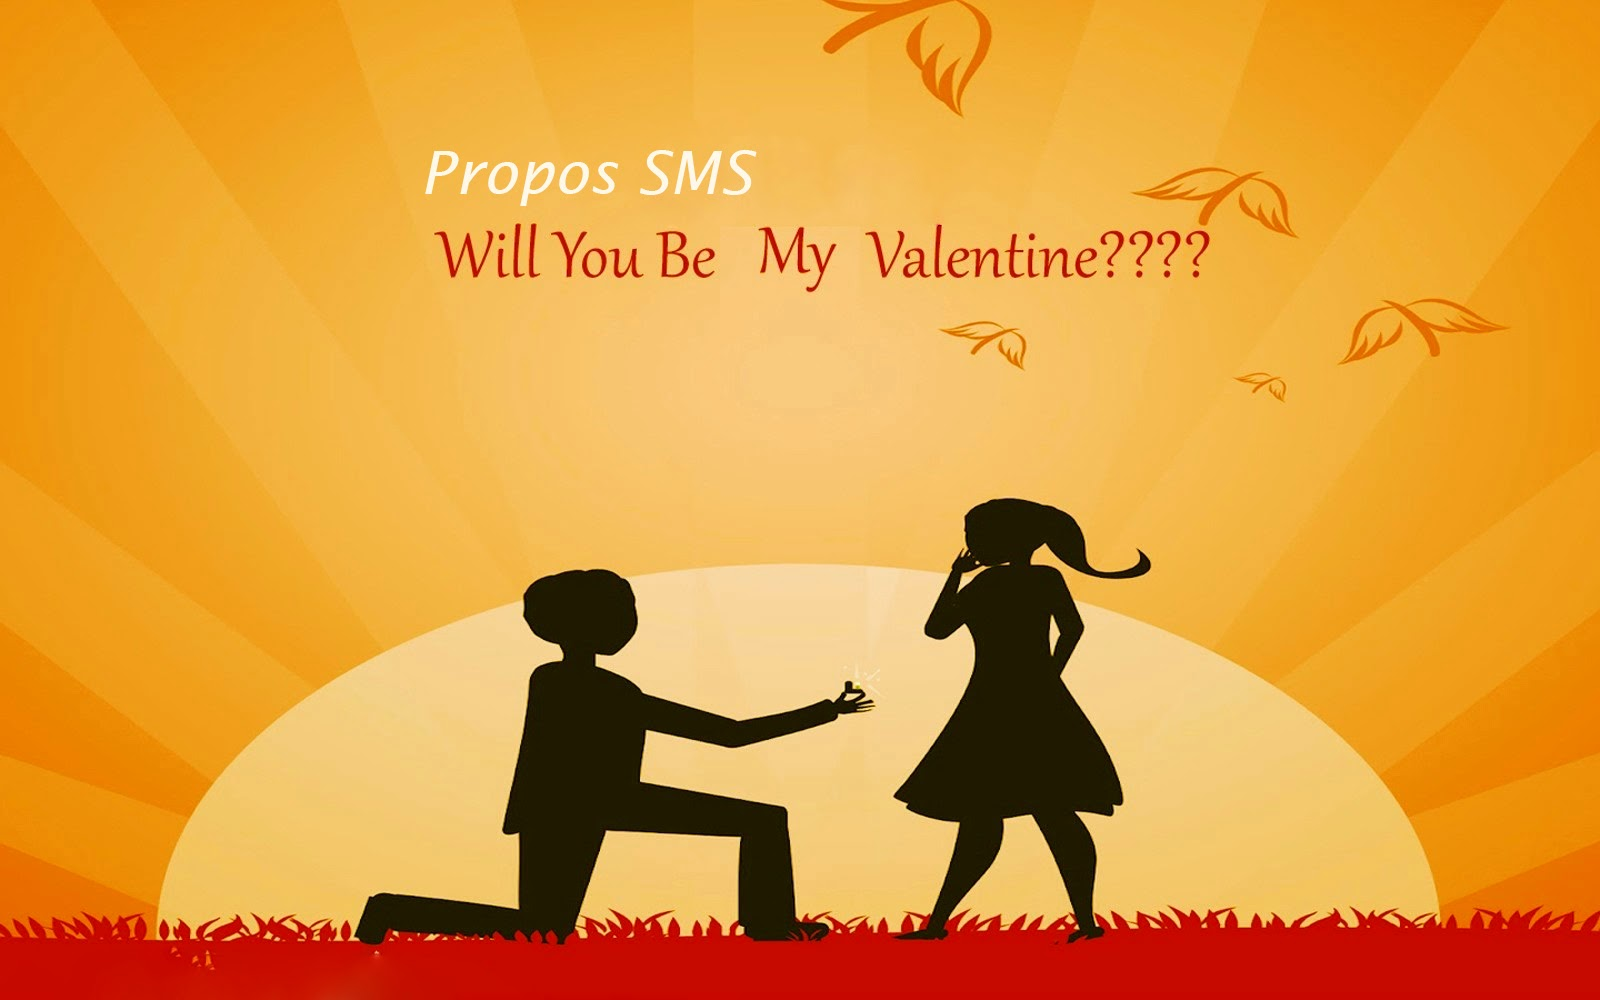 Propose Sms For Valentine's Day